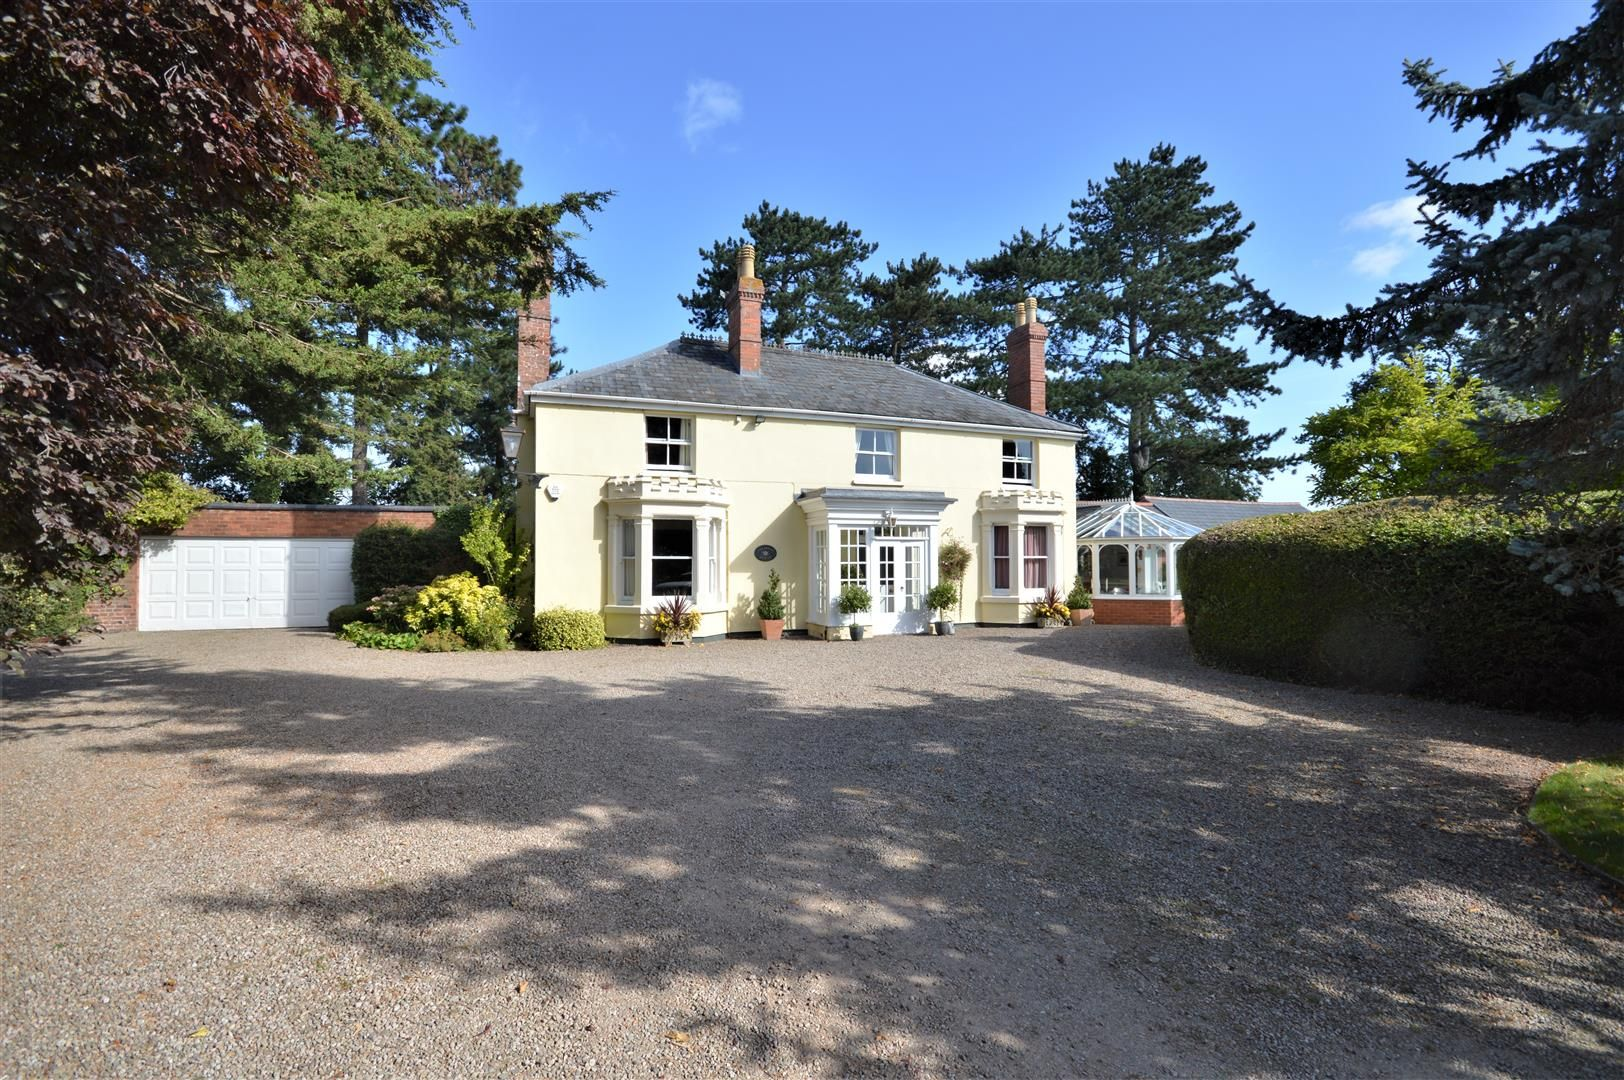 5 bed detached for sale in Stretton Sugwas 2